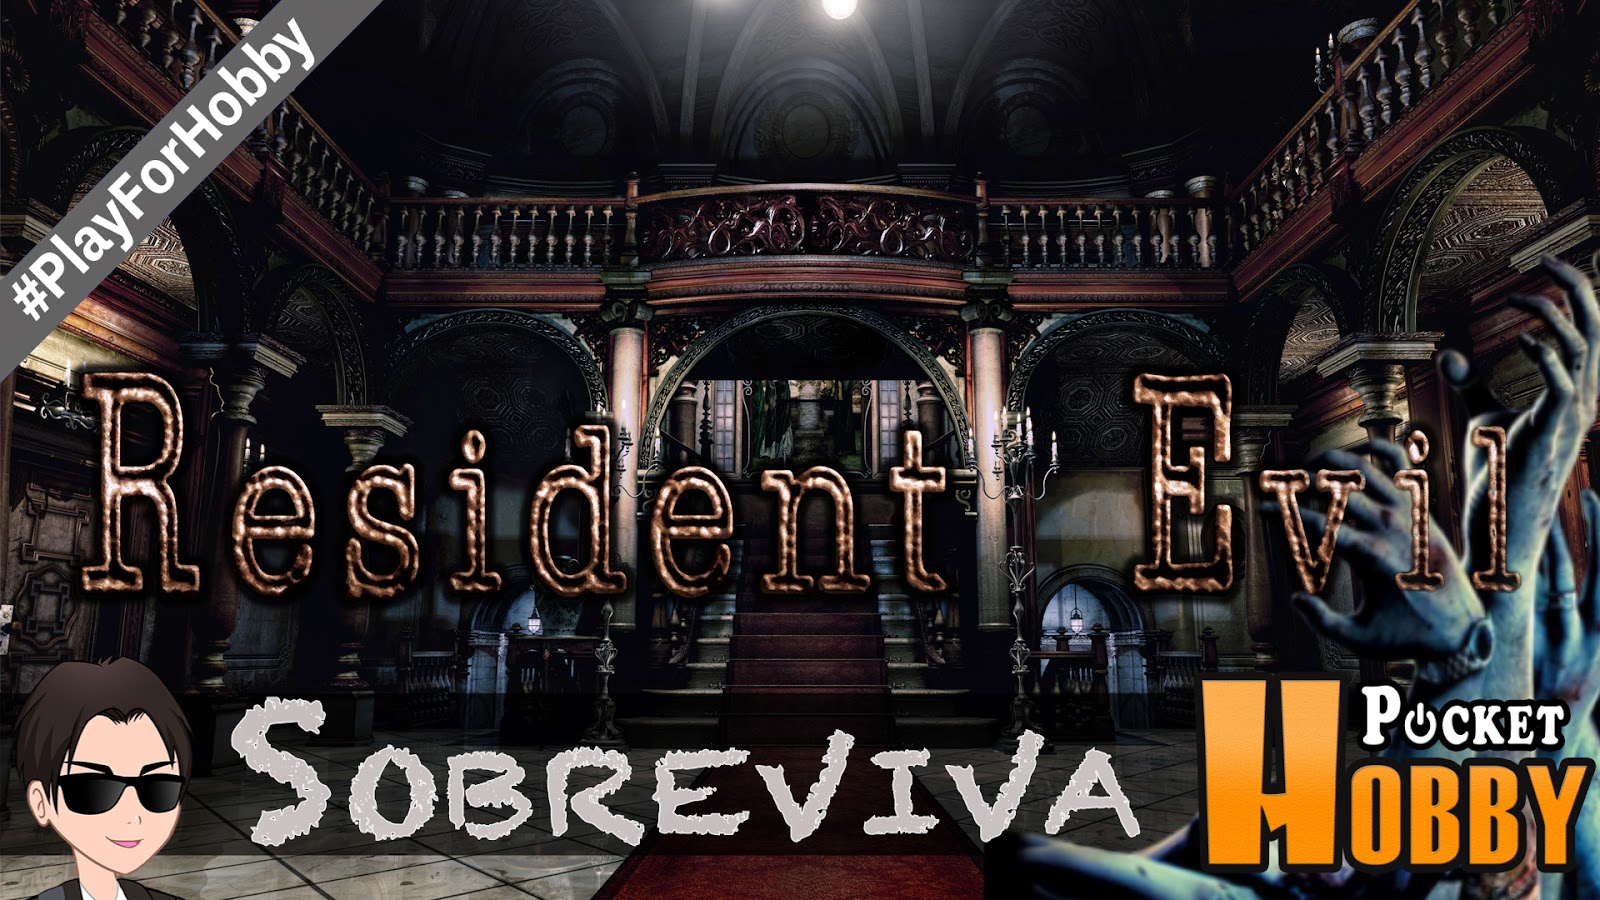 Pocket Hobby - www.pockethobby.com - Play For Hobby - Sobreviva Resident Evil .